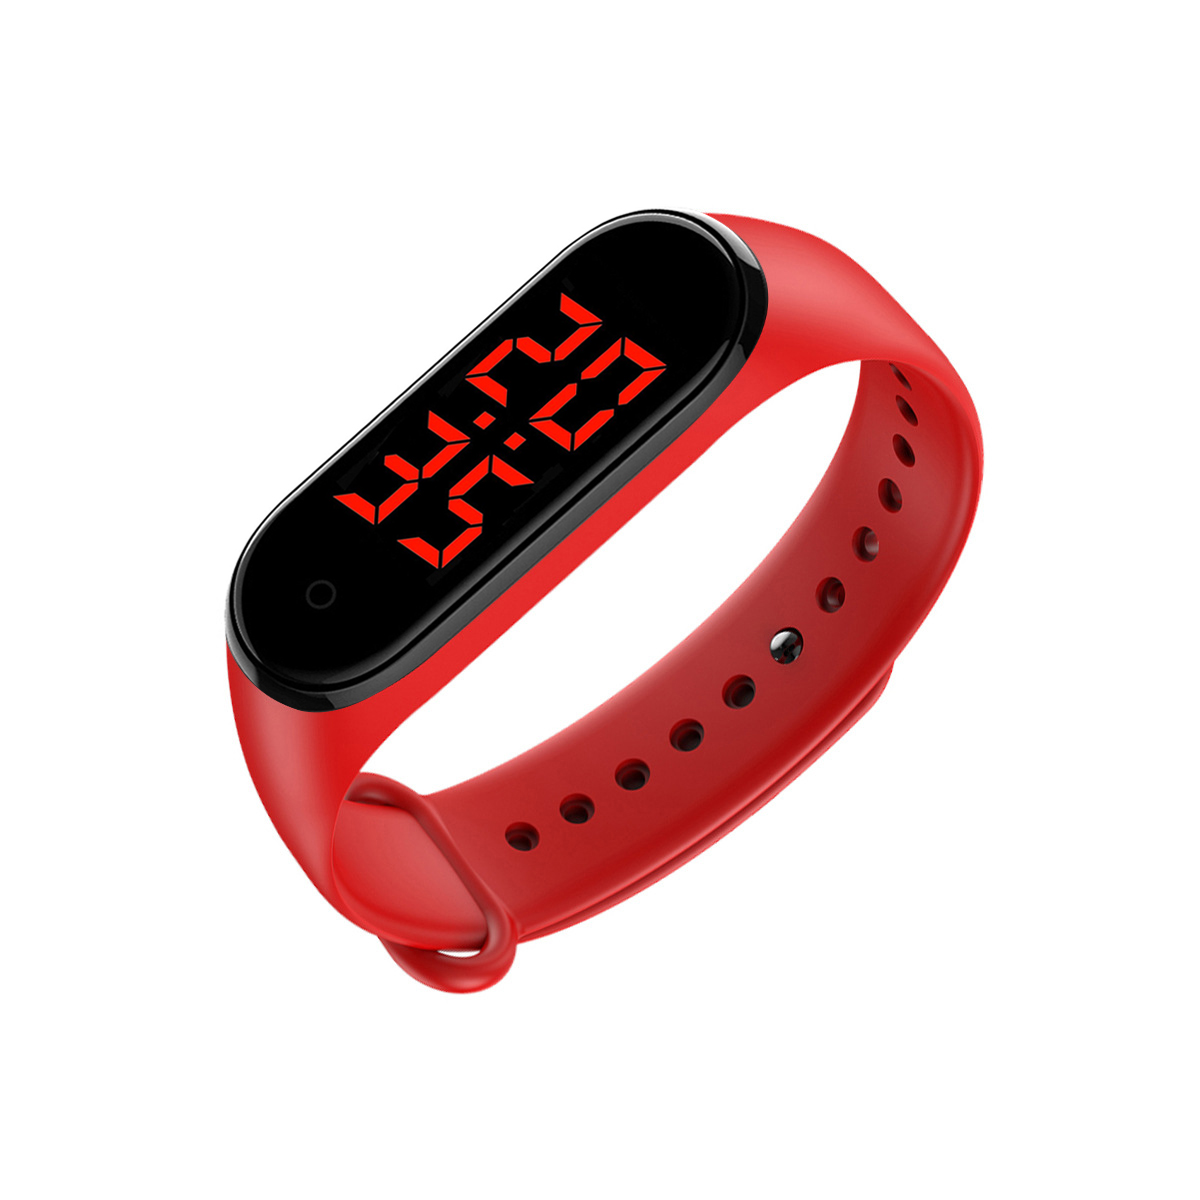 Smart Band LED Display Body Temperature Measurement Touch Screen Smart Bracelet red_Boxed